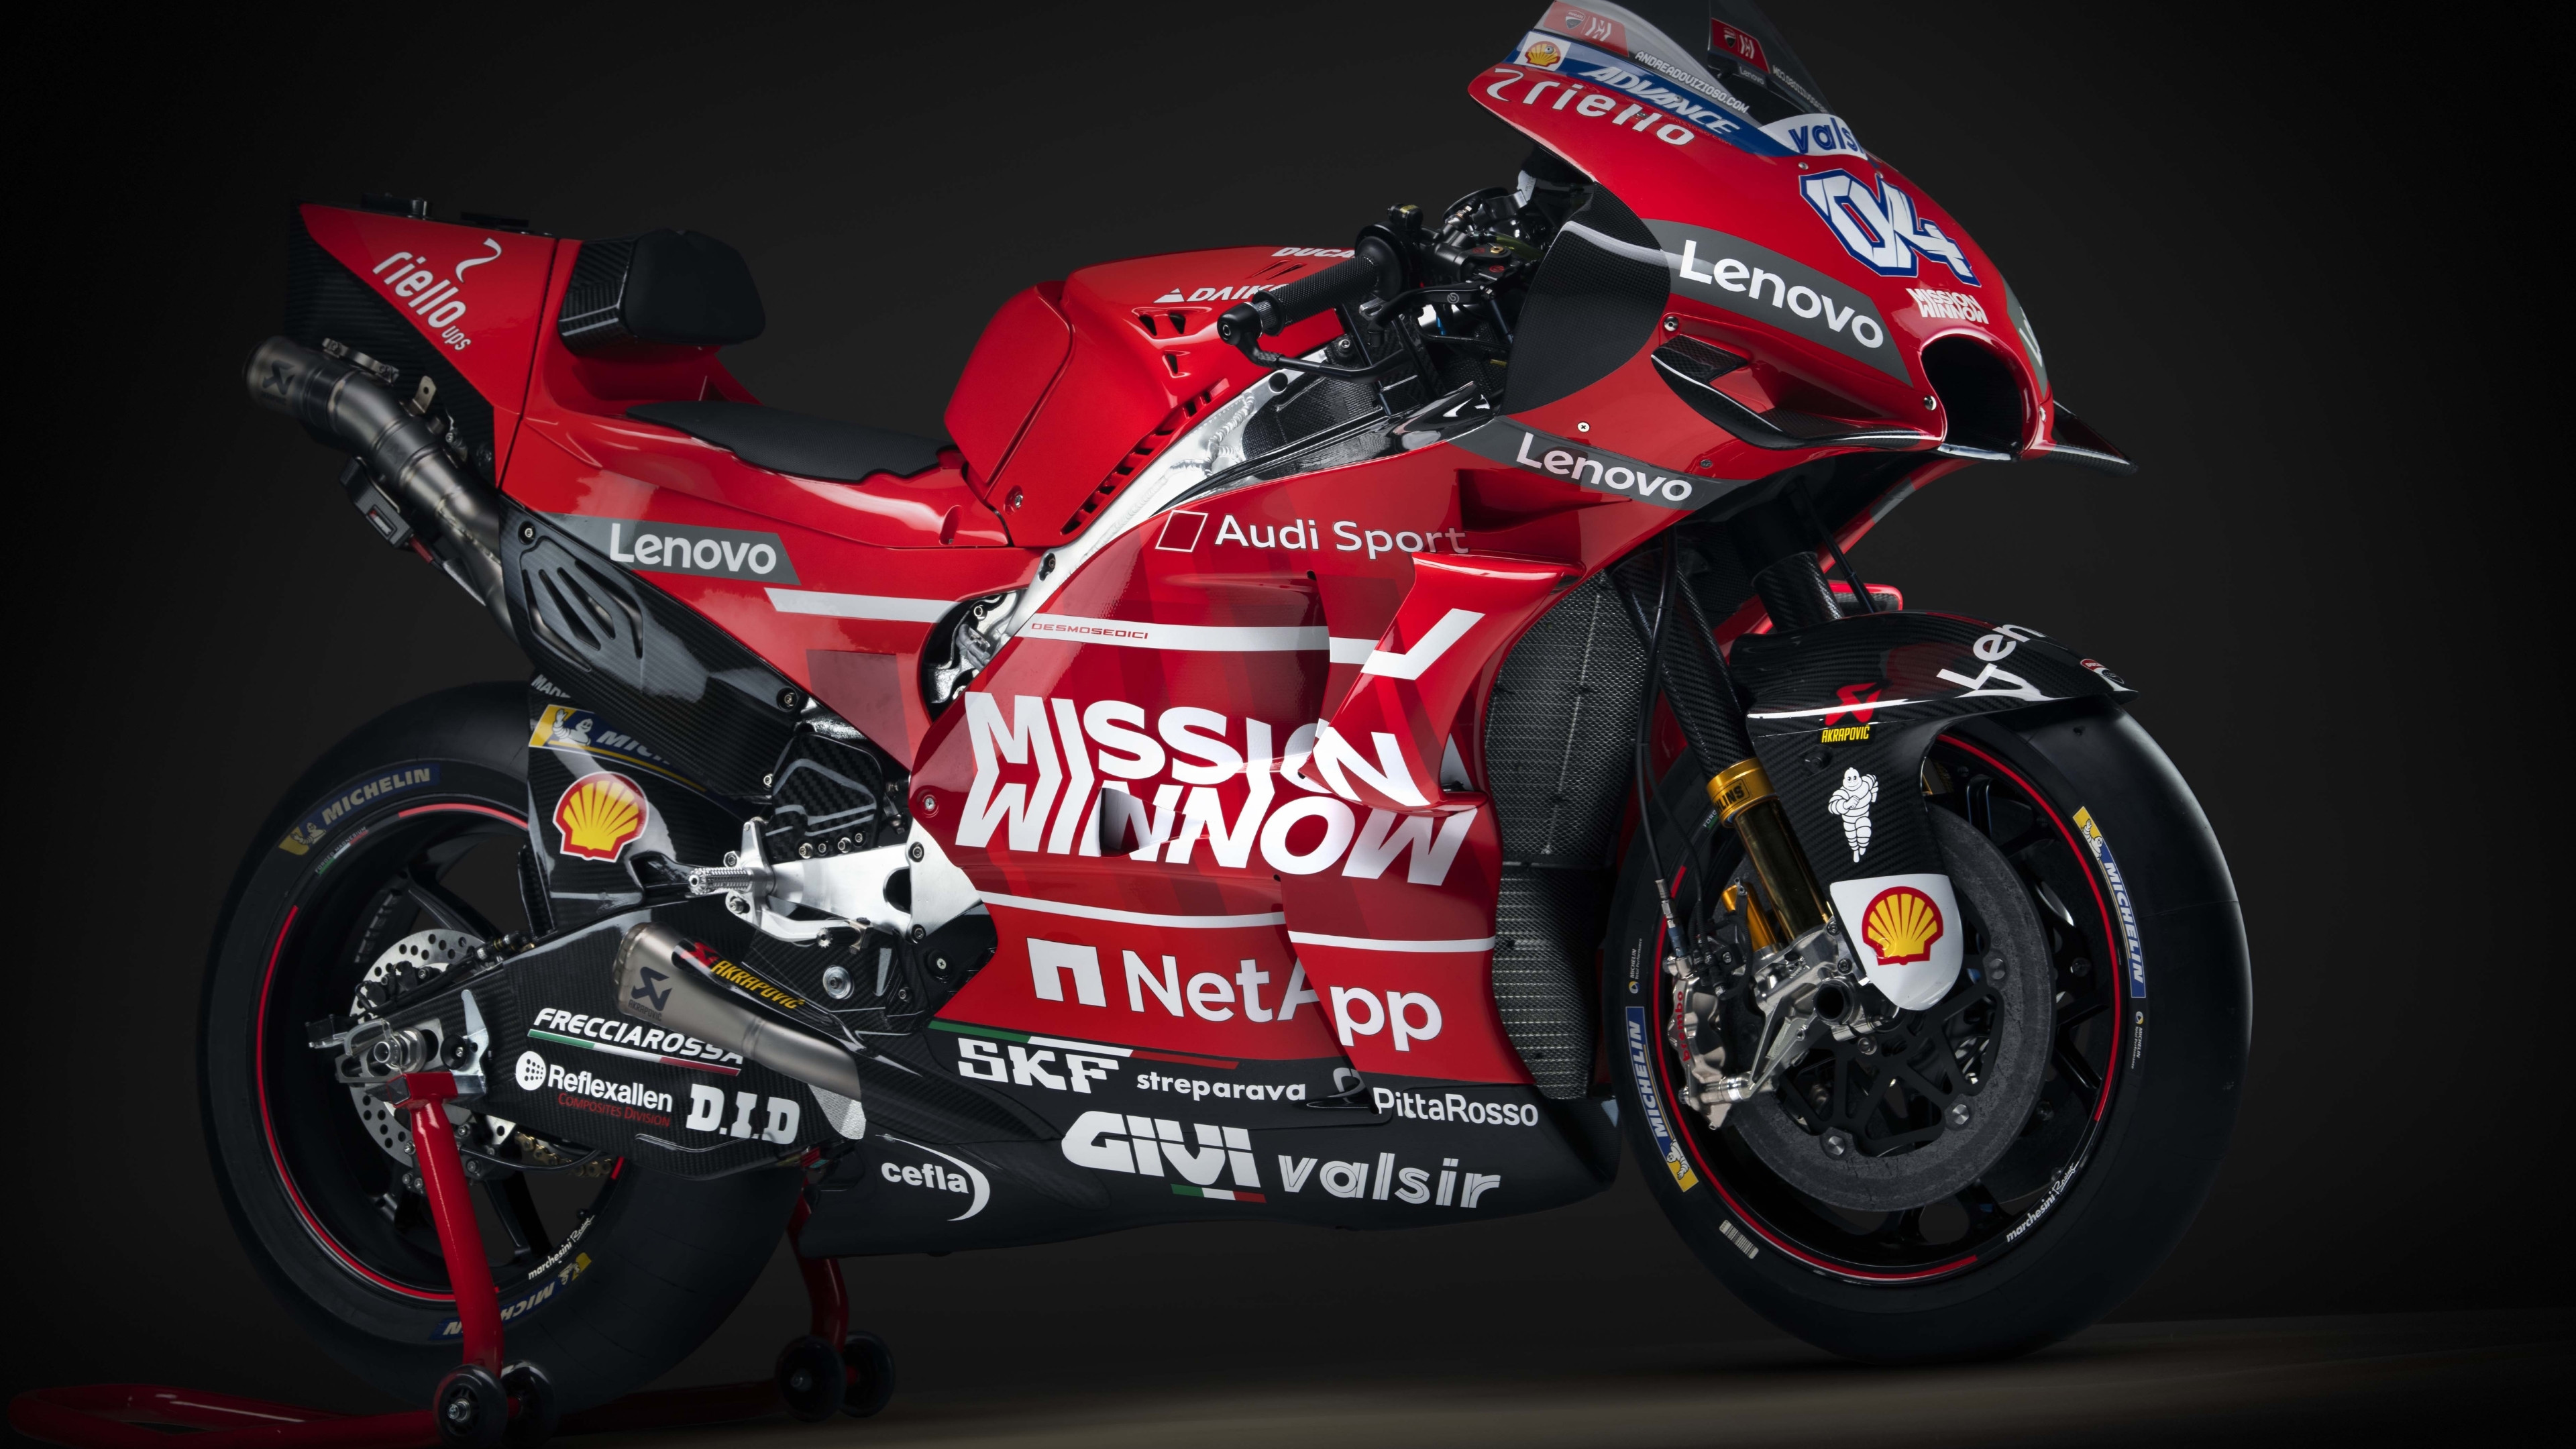 Ducati Desmosedici GP19 wallpaper 3840x2160